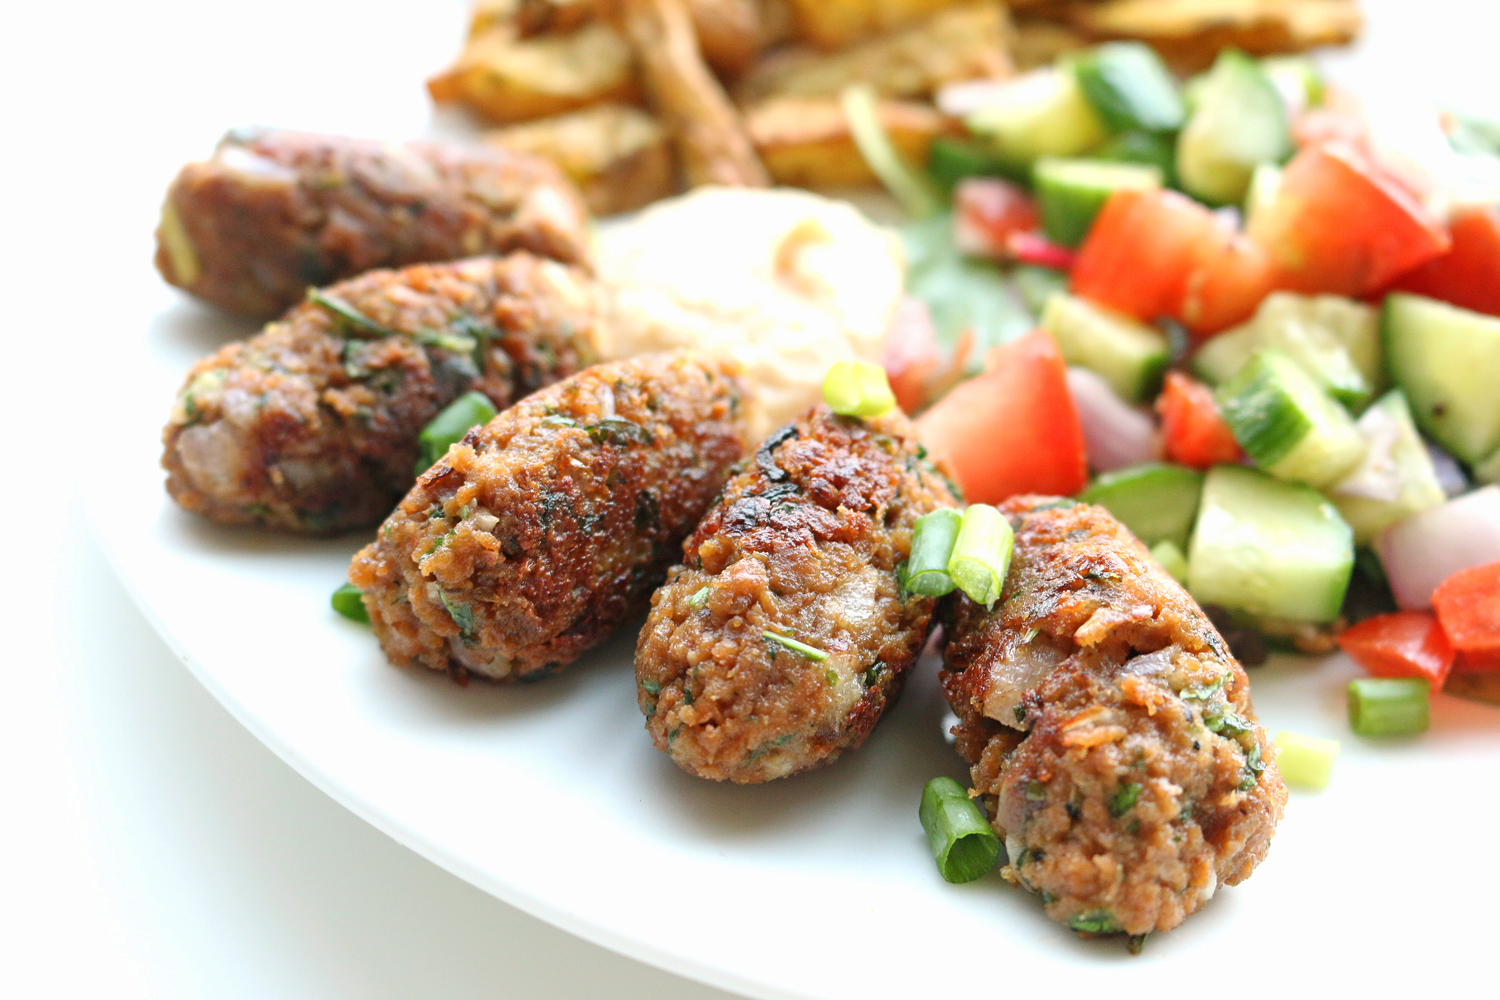 dadddef903e I paired my Koftas with a simple Baladi-style salad of cucumbers, tomatoes  and onions in a cumin vinaigrette, a dollop of hummus as well as some  Za'atar ...